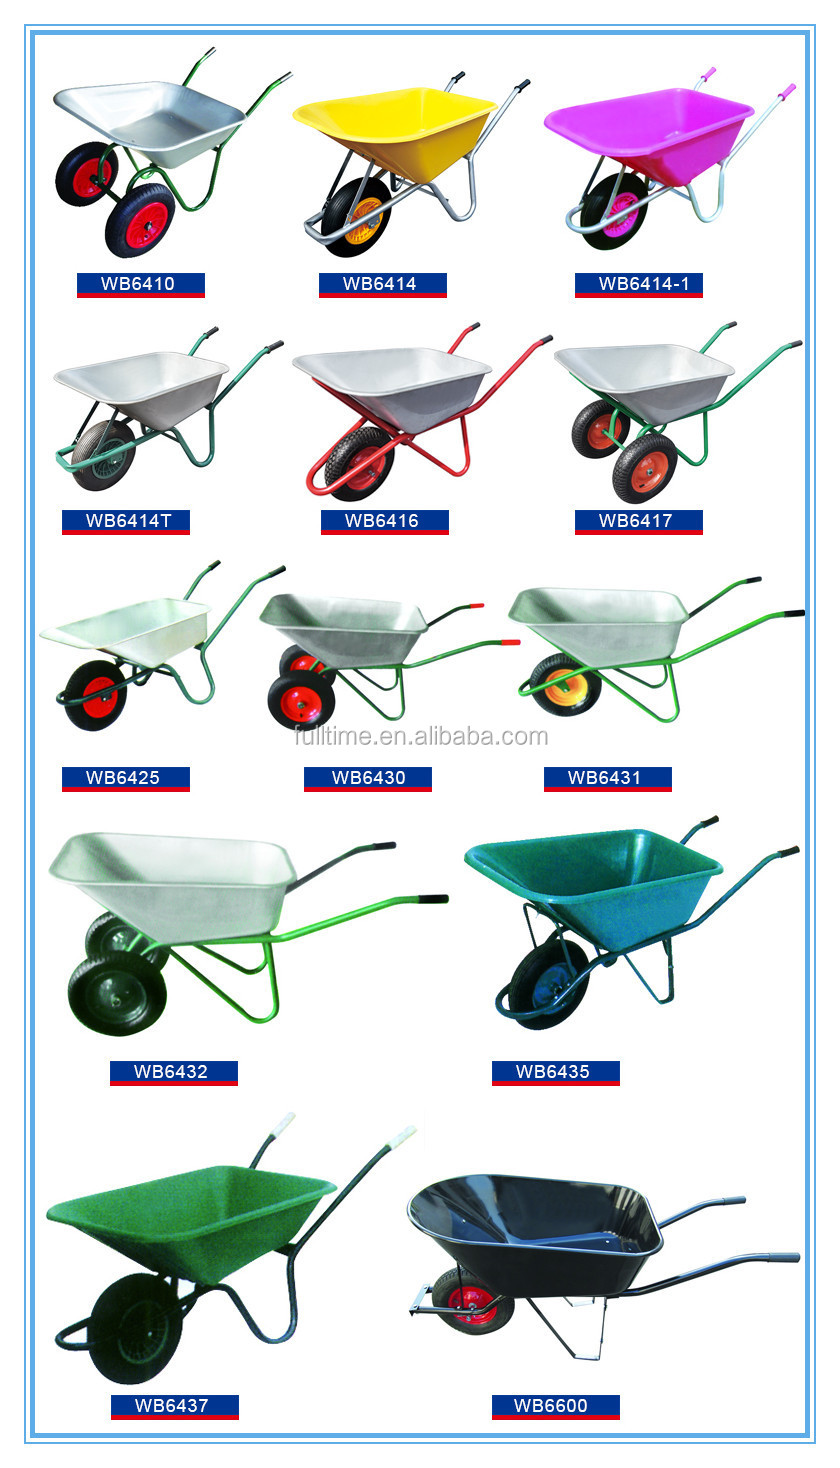 Durable Farm Equipment Wheelbarrow For Construction,Farm Tool Wheelbarrow Supplier,New Style Construction Wheelbarrow Hand Tool